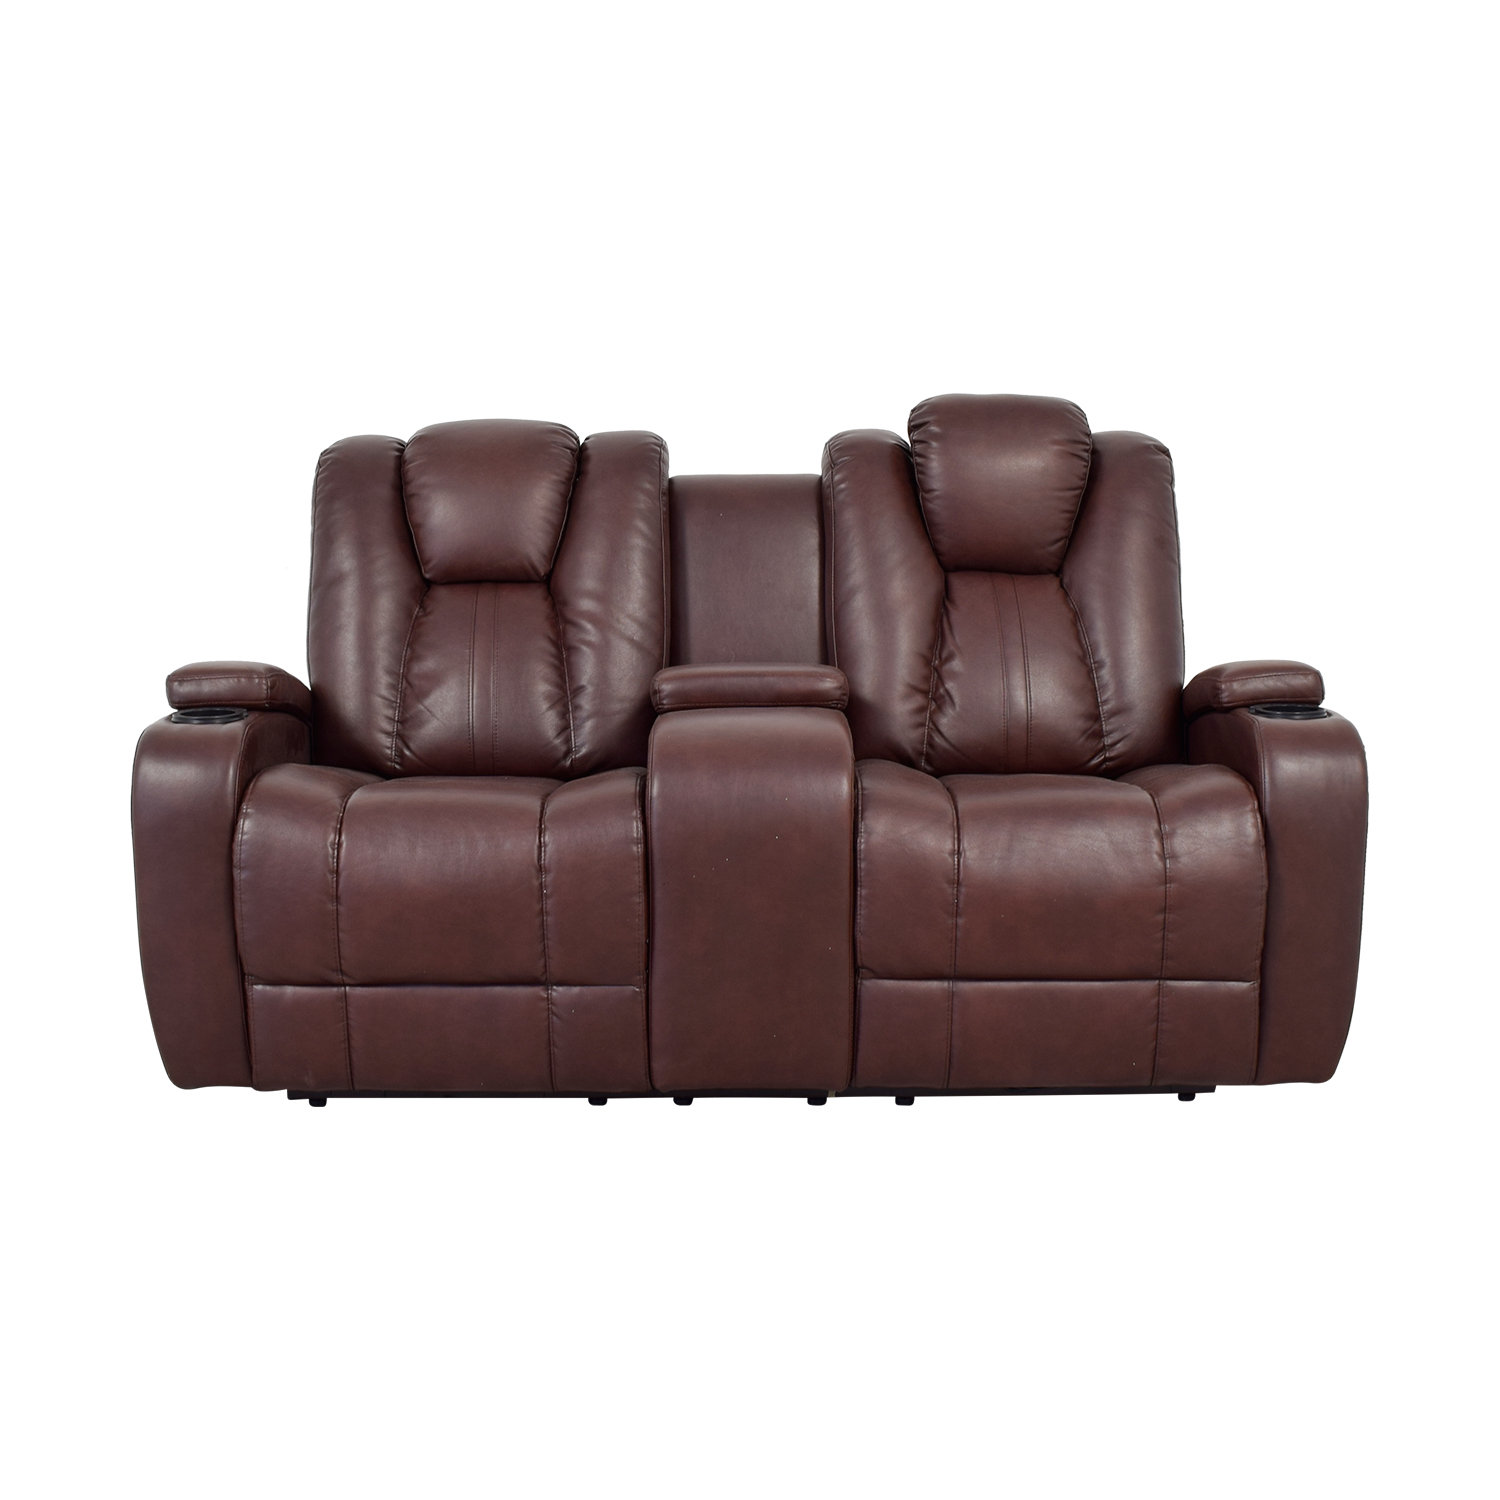 Bob's Furniture Bob's Furniture Brown Power Dual Reclining Console Loveseat used